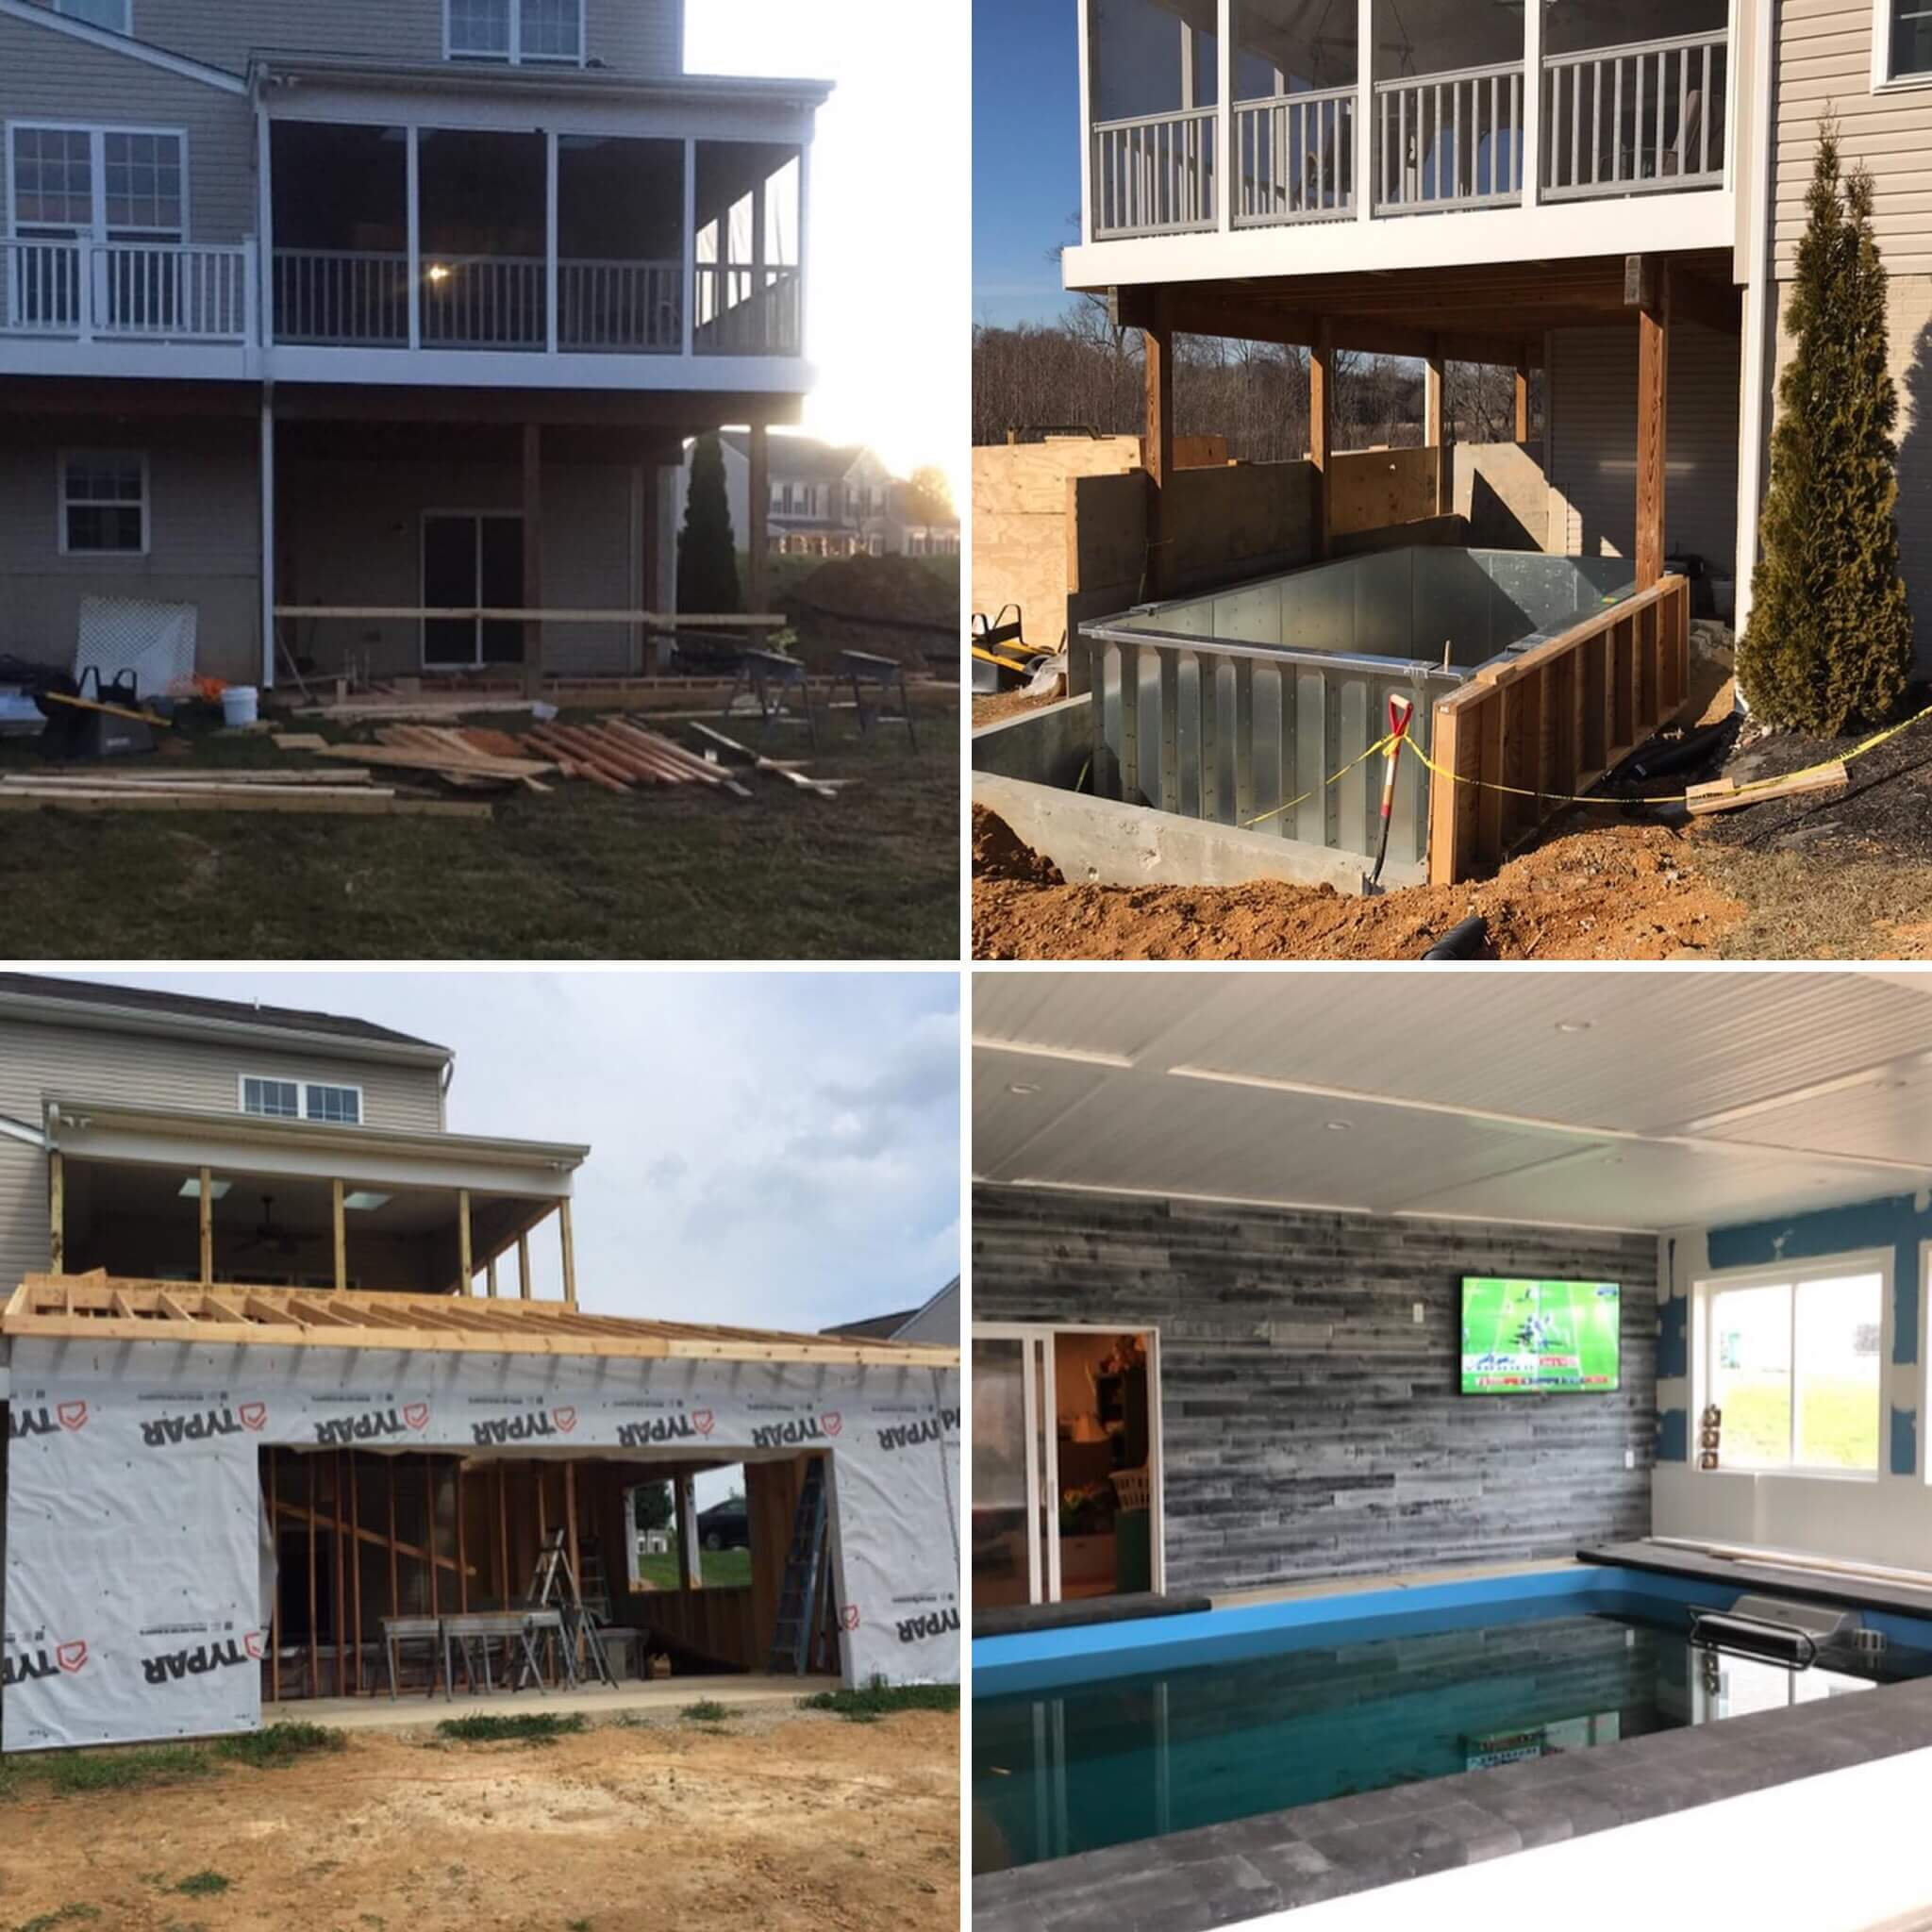 stages of progress of the home addition for the Endless Pool room